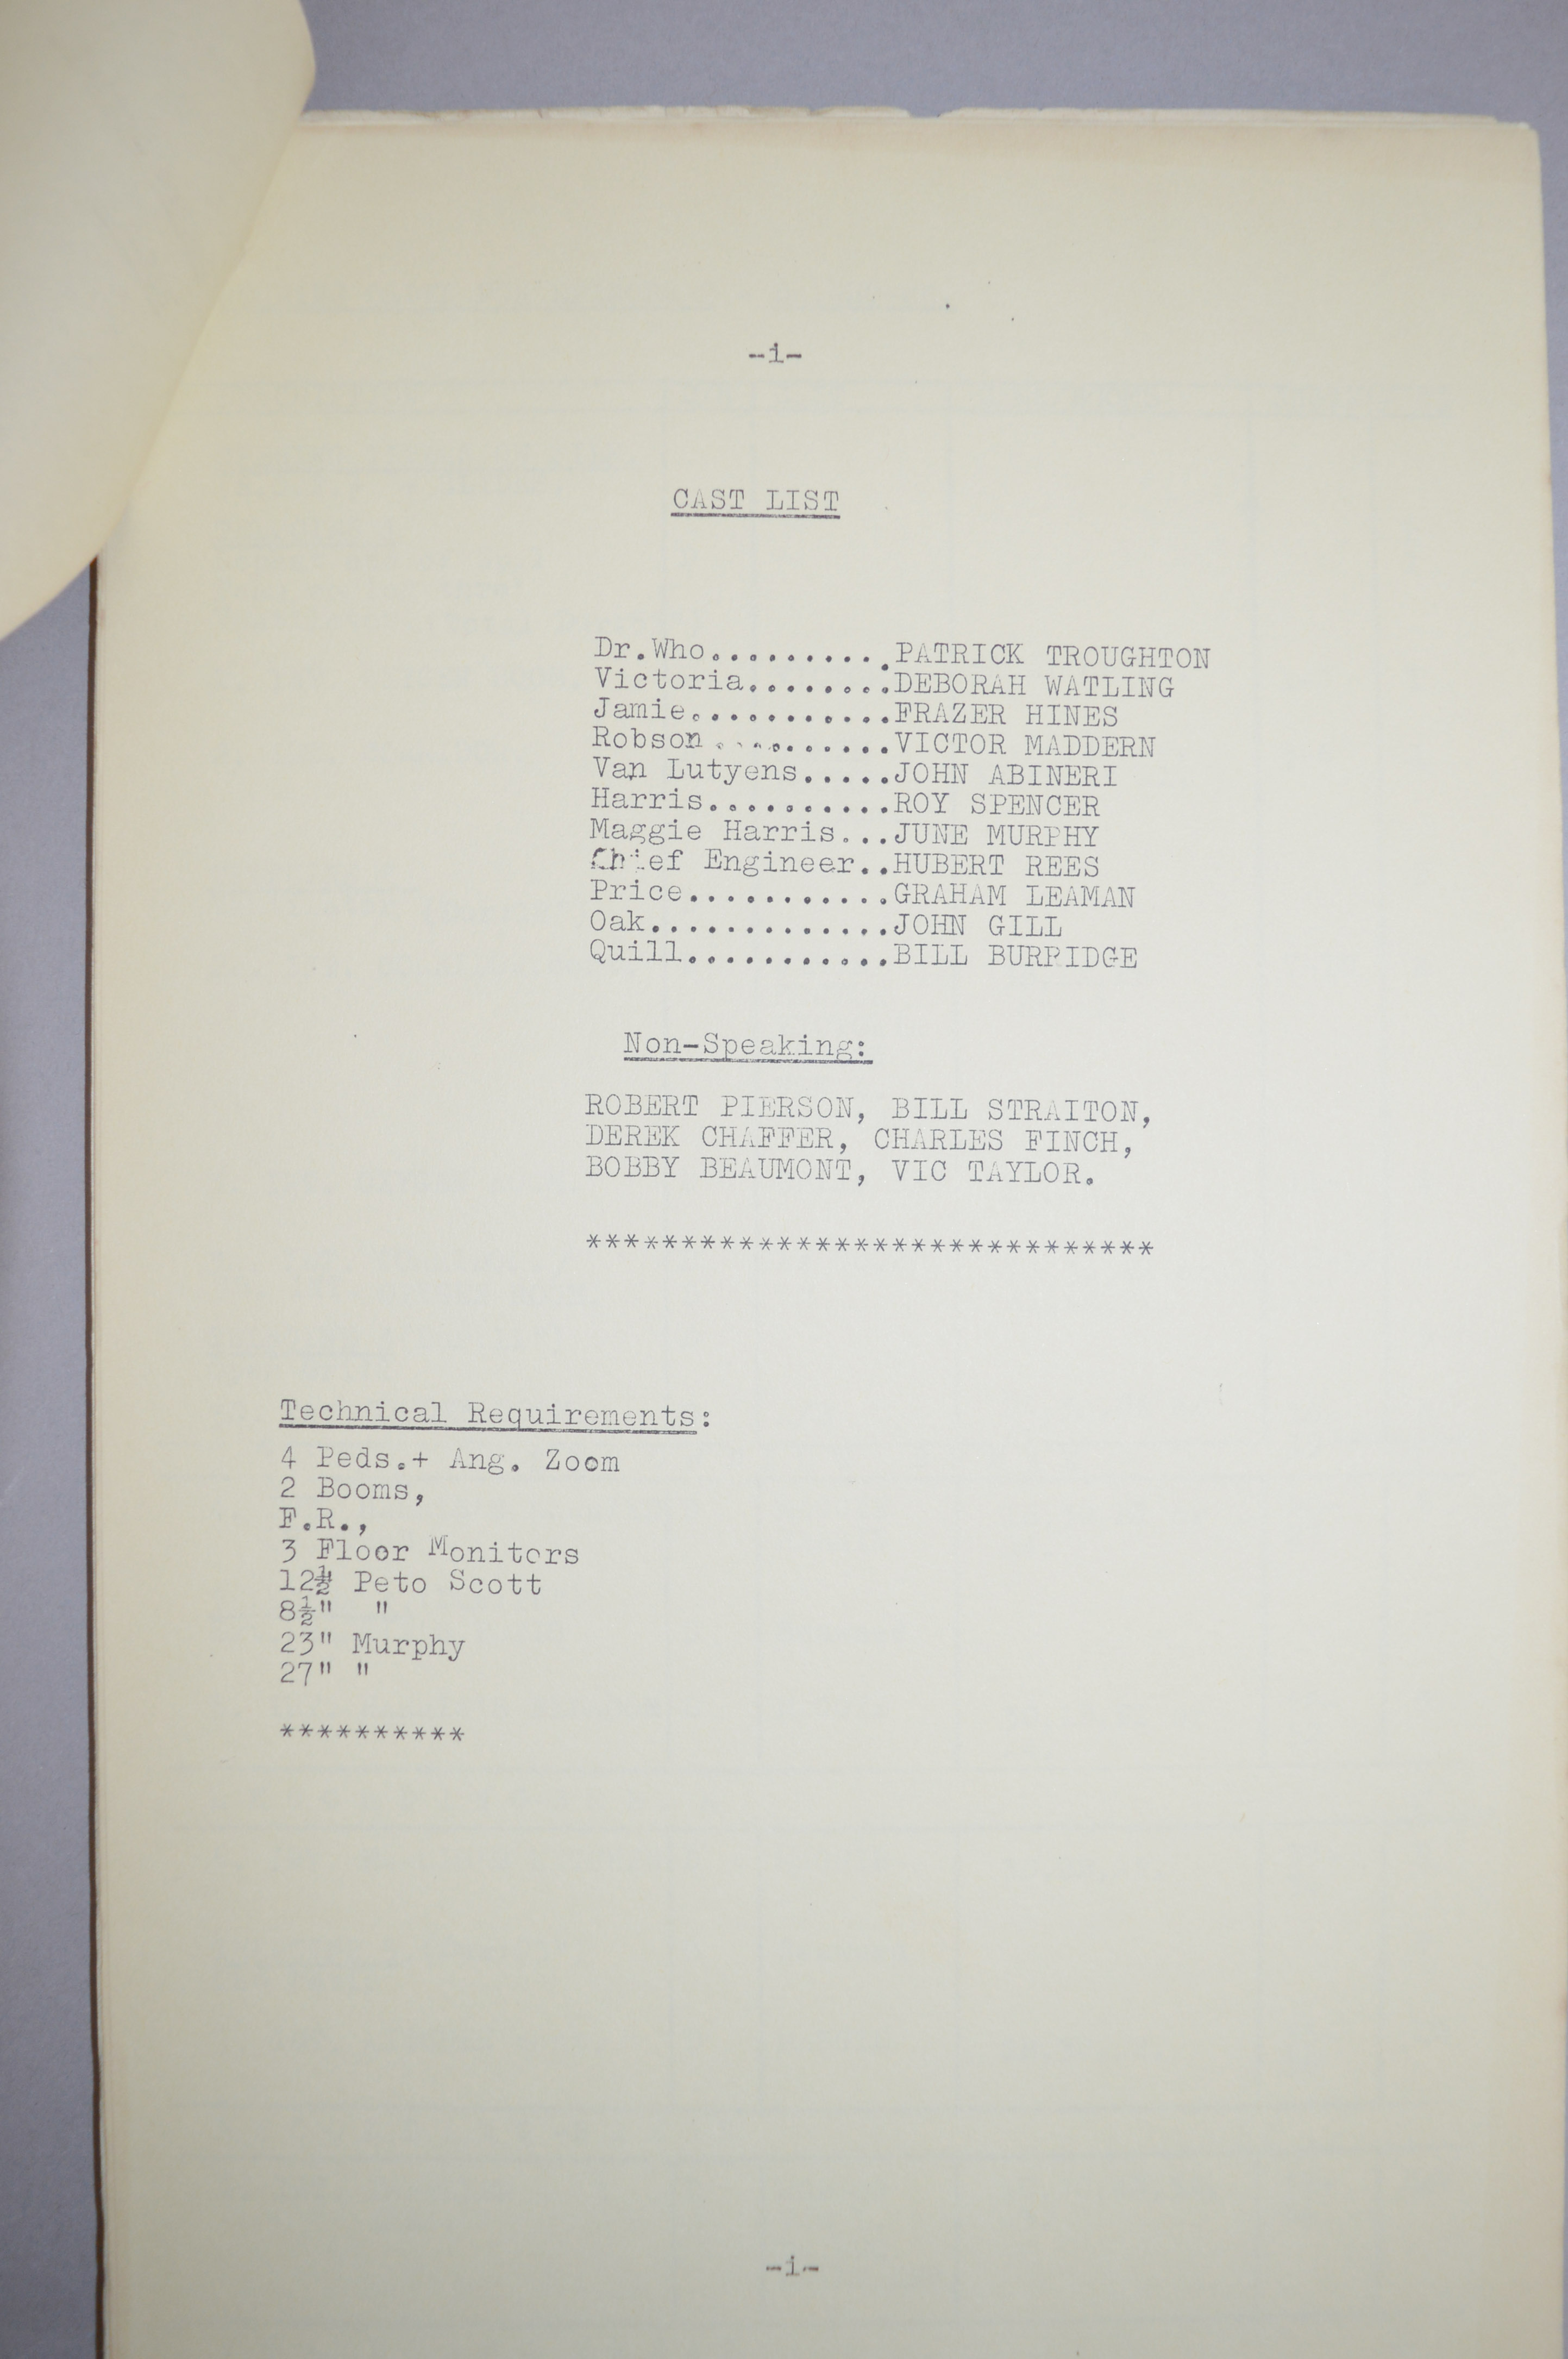 Doctor Who (Dr Who) full set of 6 original camera scripts from the missing 1968 Dr Who episode - - Image 14 of 17